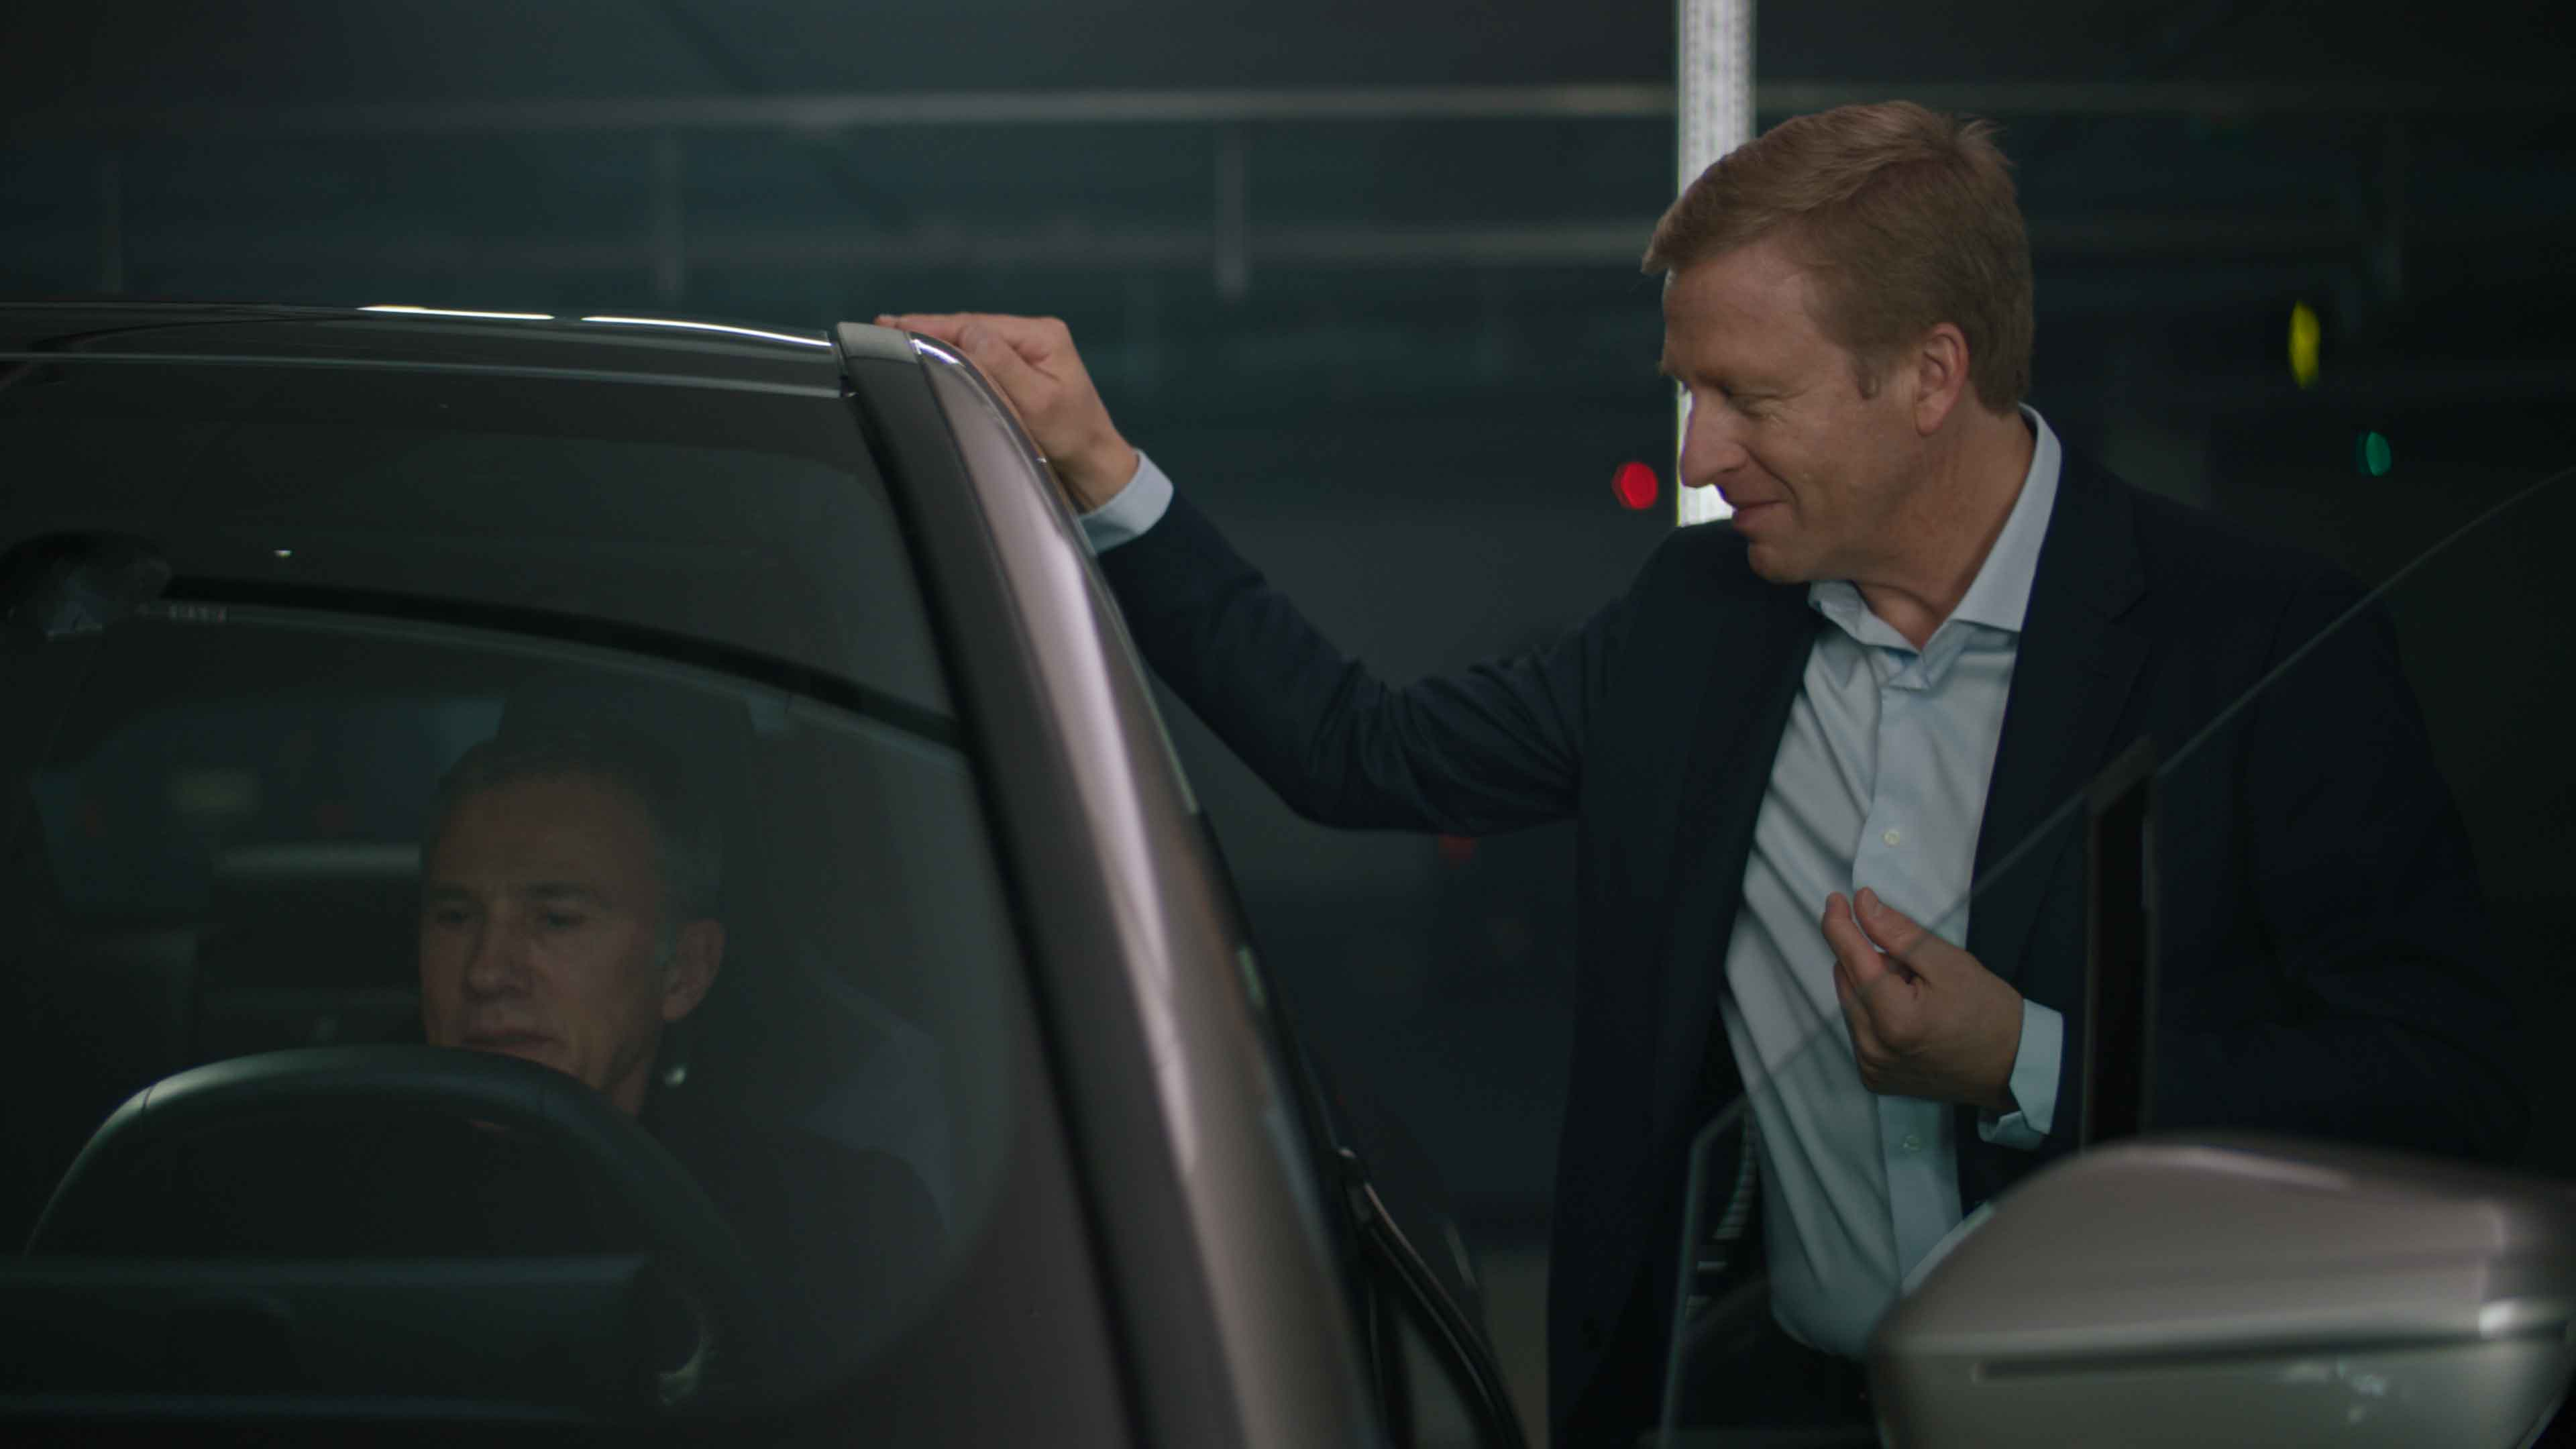 Christoph Waltz and Oliver Zipse, Chairman of the Board of Management of BMW AG, test drive the BMW iX.